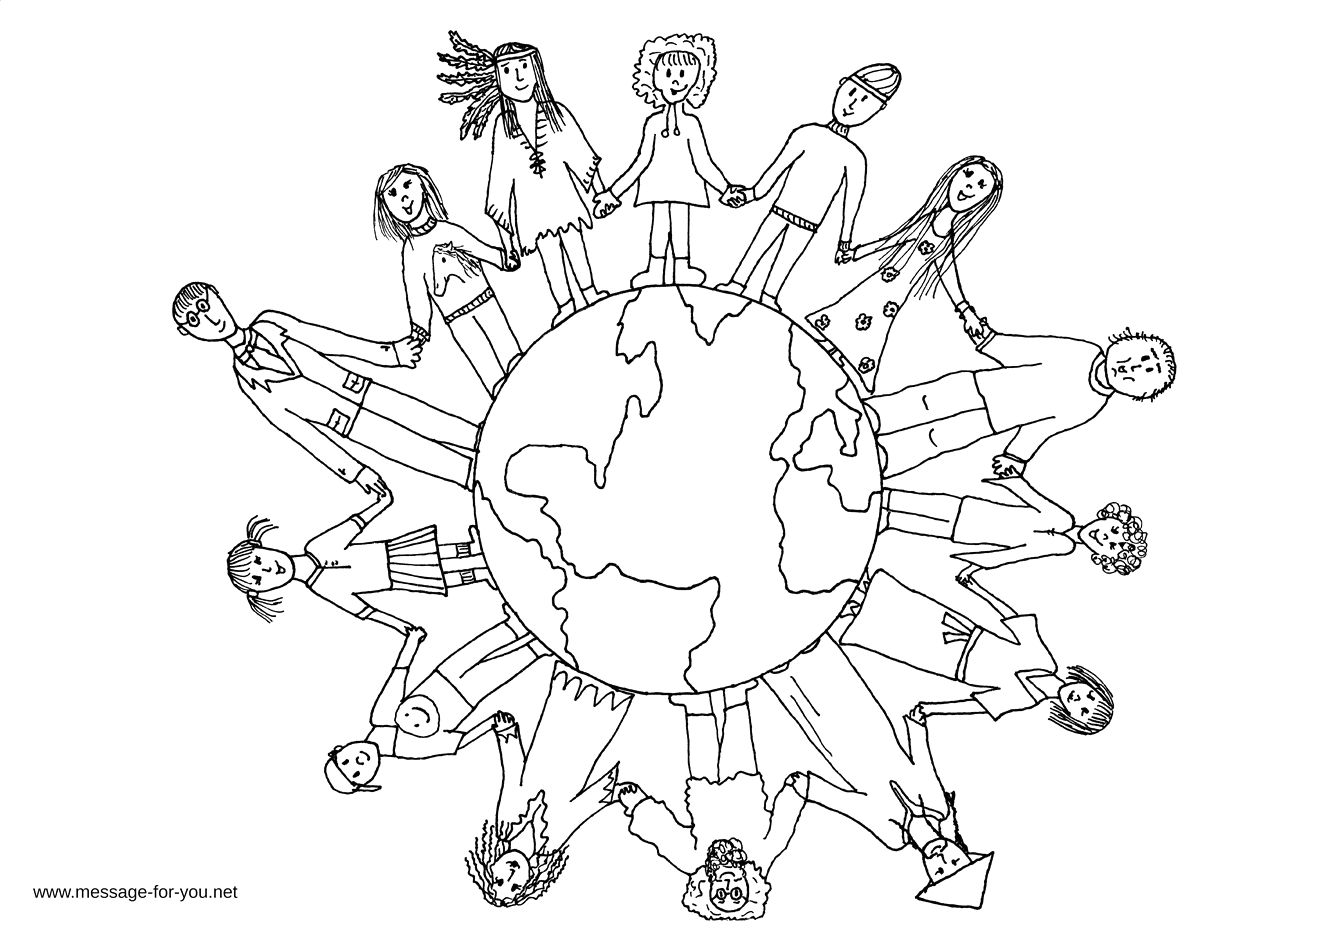 Coloring Pages Of Children Of the World Children the World Coloring Pages Bestofcoloring